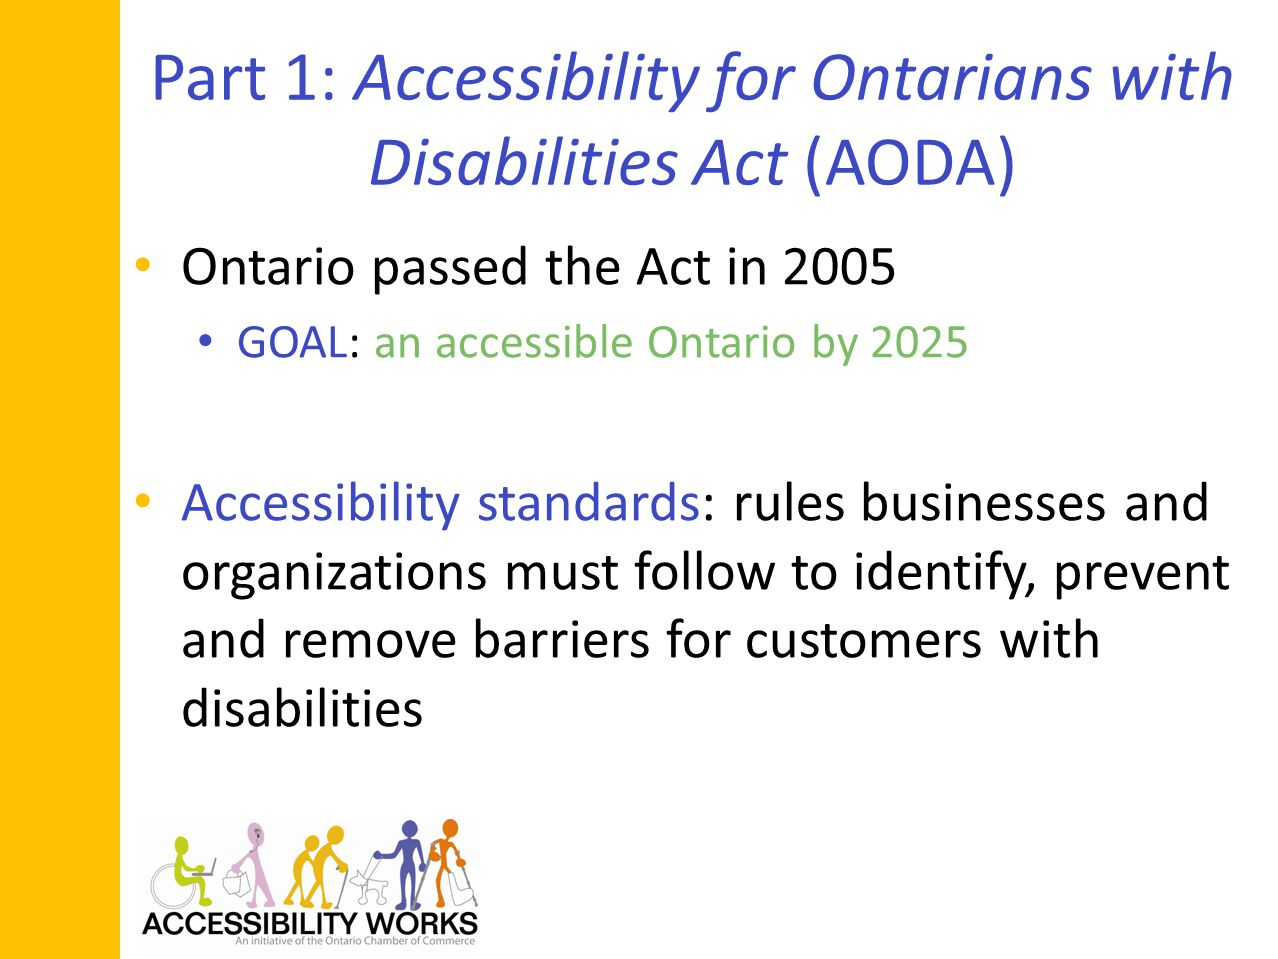 Part 1: Accessibility for Ontarians with Disabilities Act (AODA) Ontario passed the Act in 2005 GOAL: an accessible Ontario by 2025 Accessibility standards: rules businesses and organizations must follow to identify, prevent and remove barriers for customers with disabilities